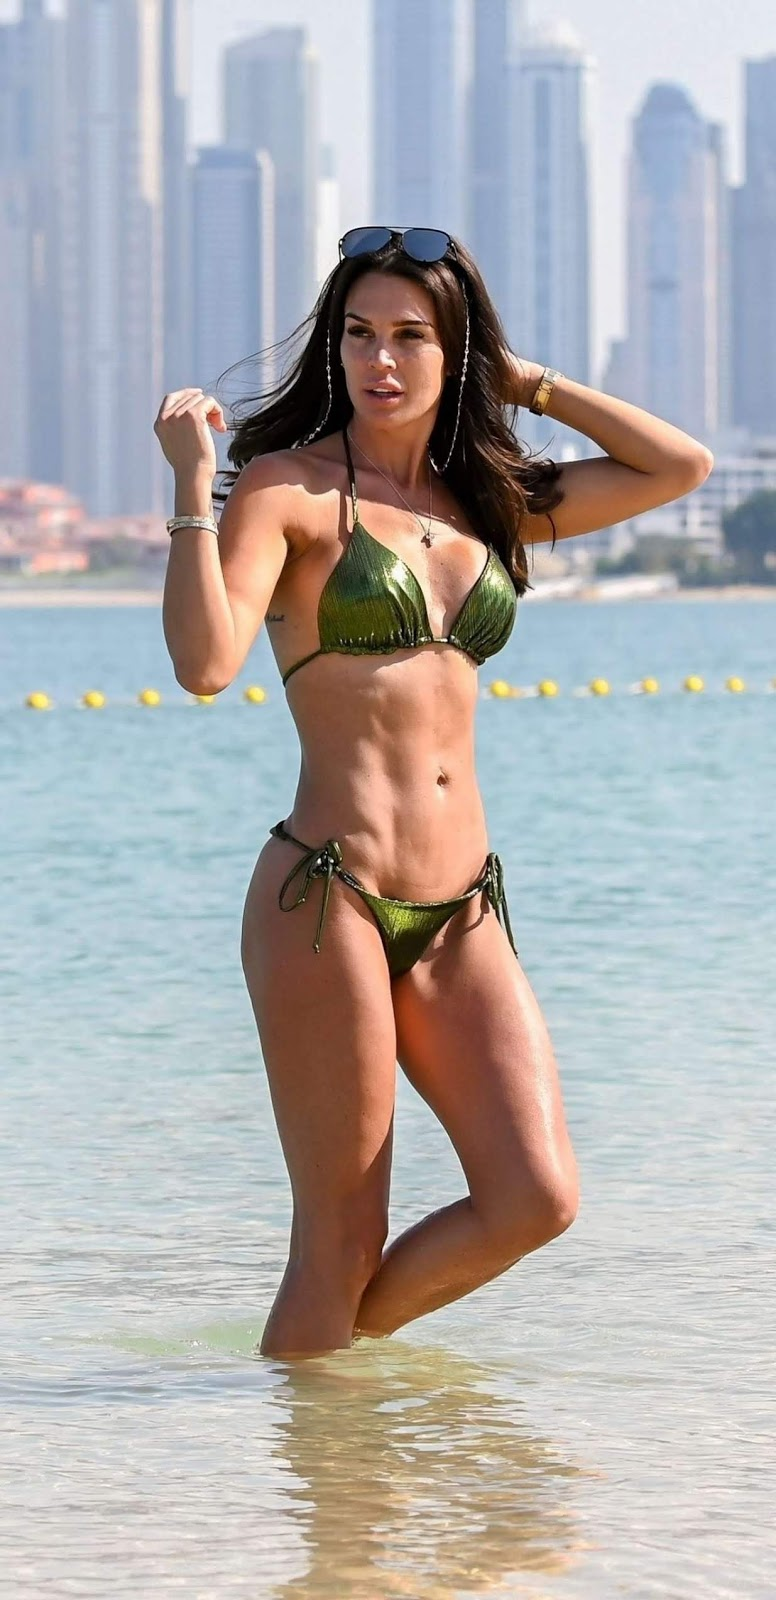 Danielle was sure to turn heads as she flaunted her enviable figure at the beach